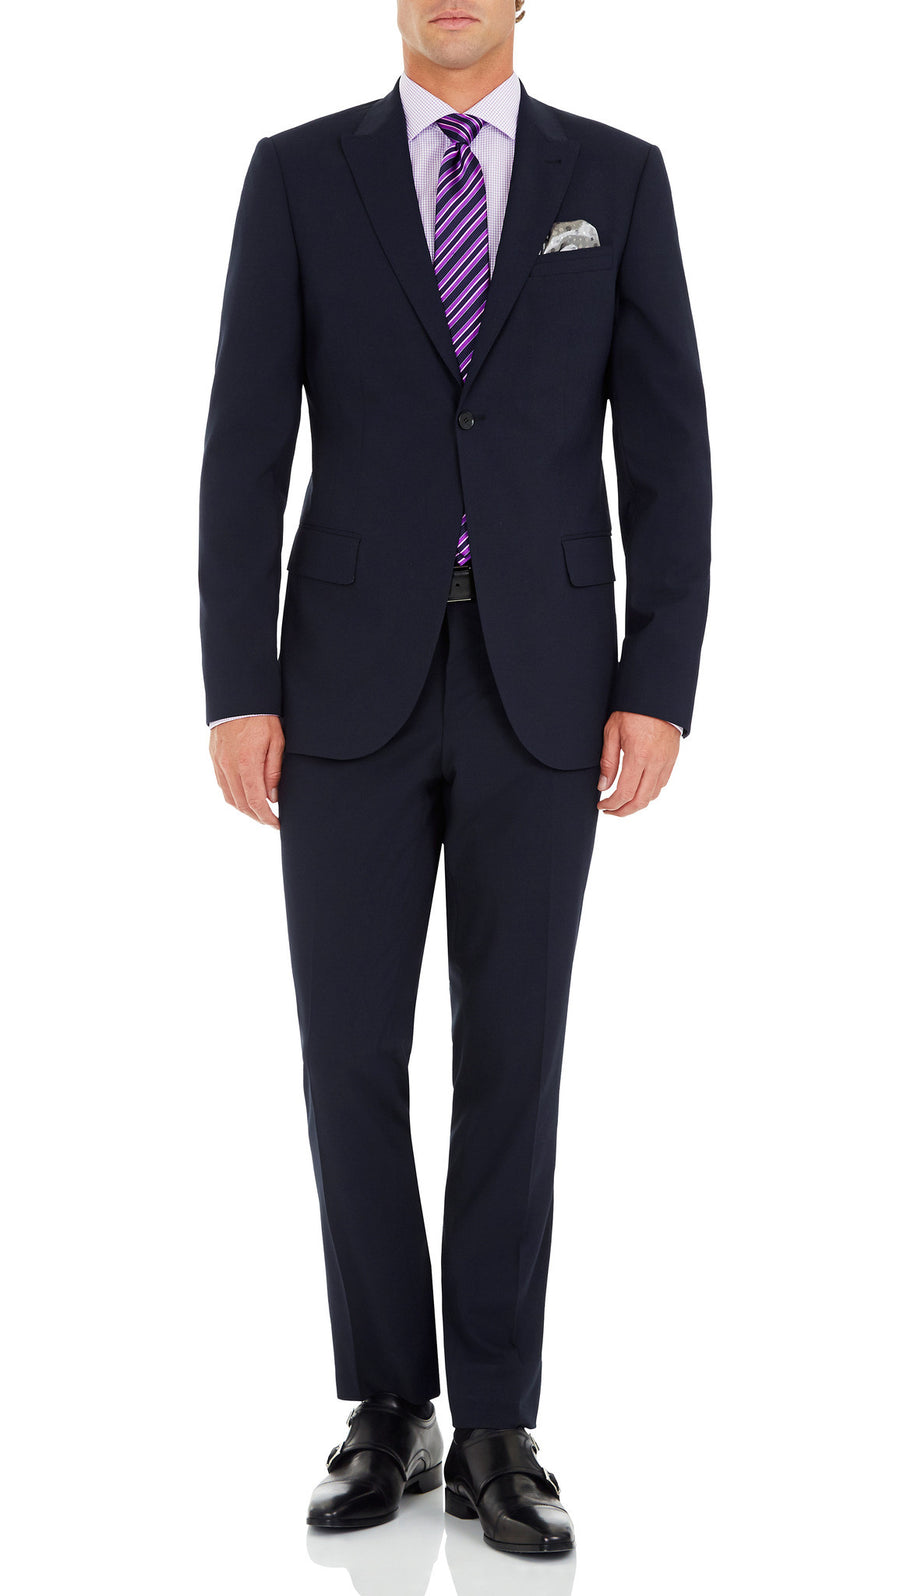 "Blackjacket ""Caprice"" Slim Fit Suit in Navy - Ron Bennett Menswear  - 2"